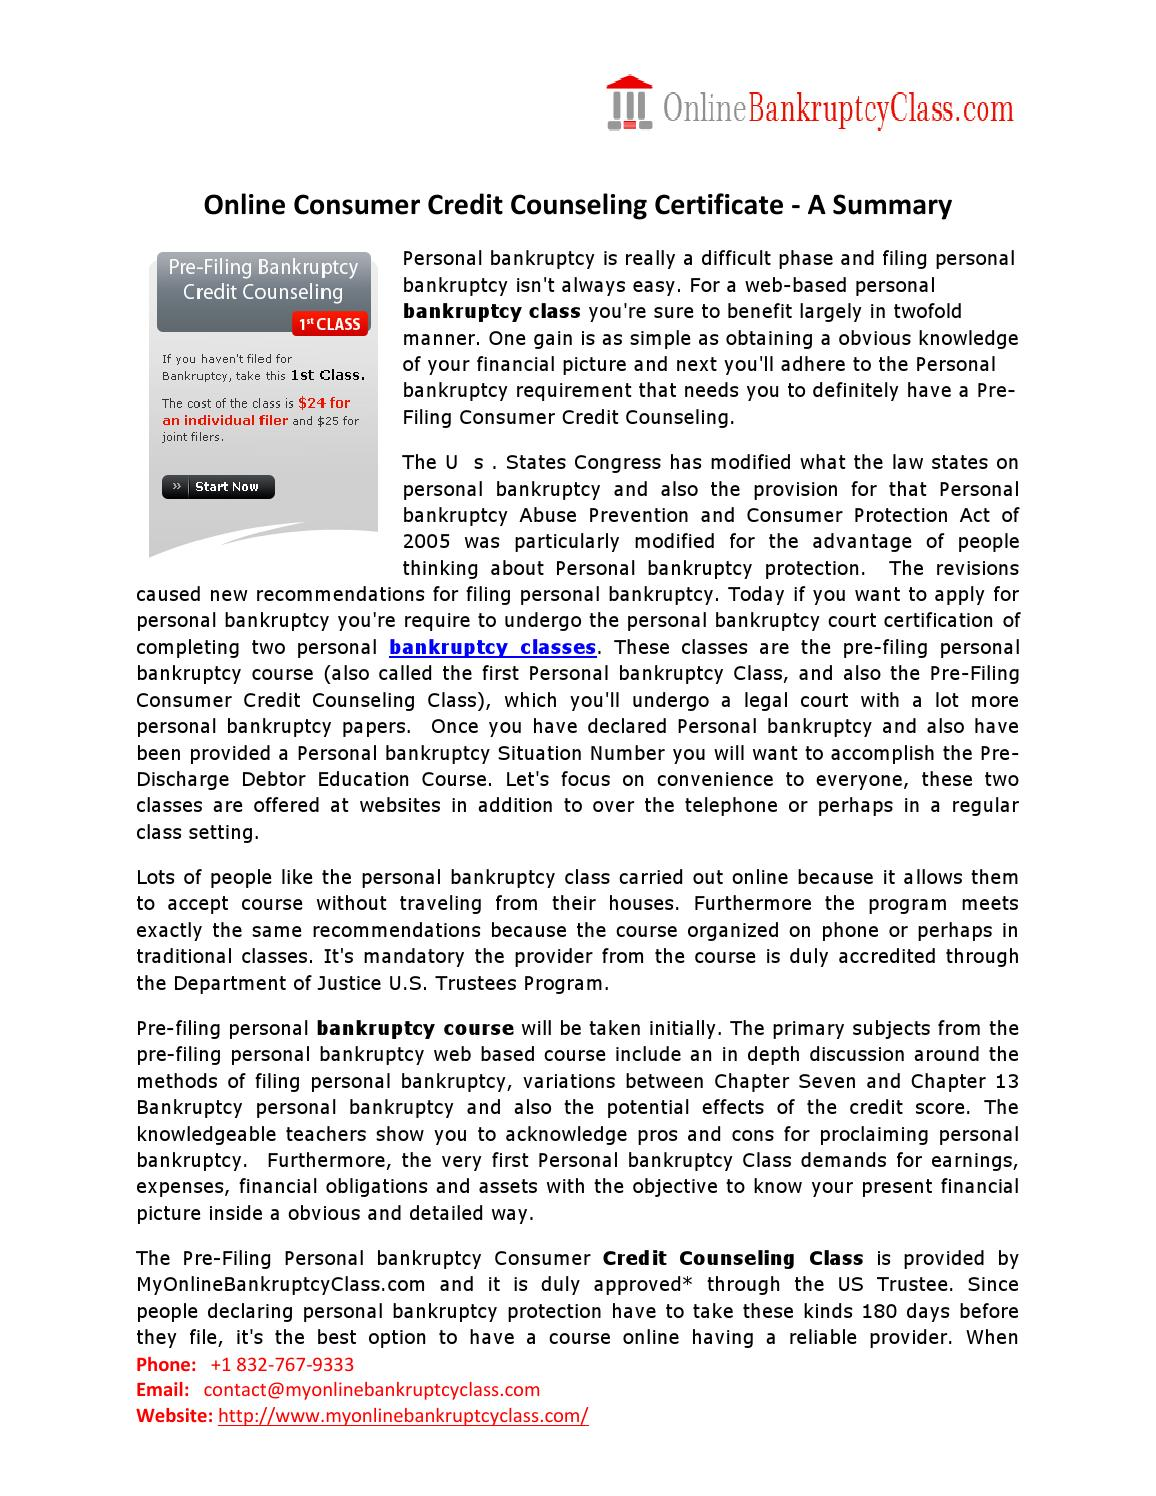 Credit Counseling Certificate Online By Onlinebankruptcyclass Issuu